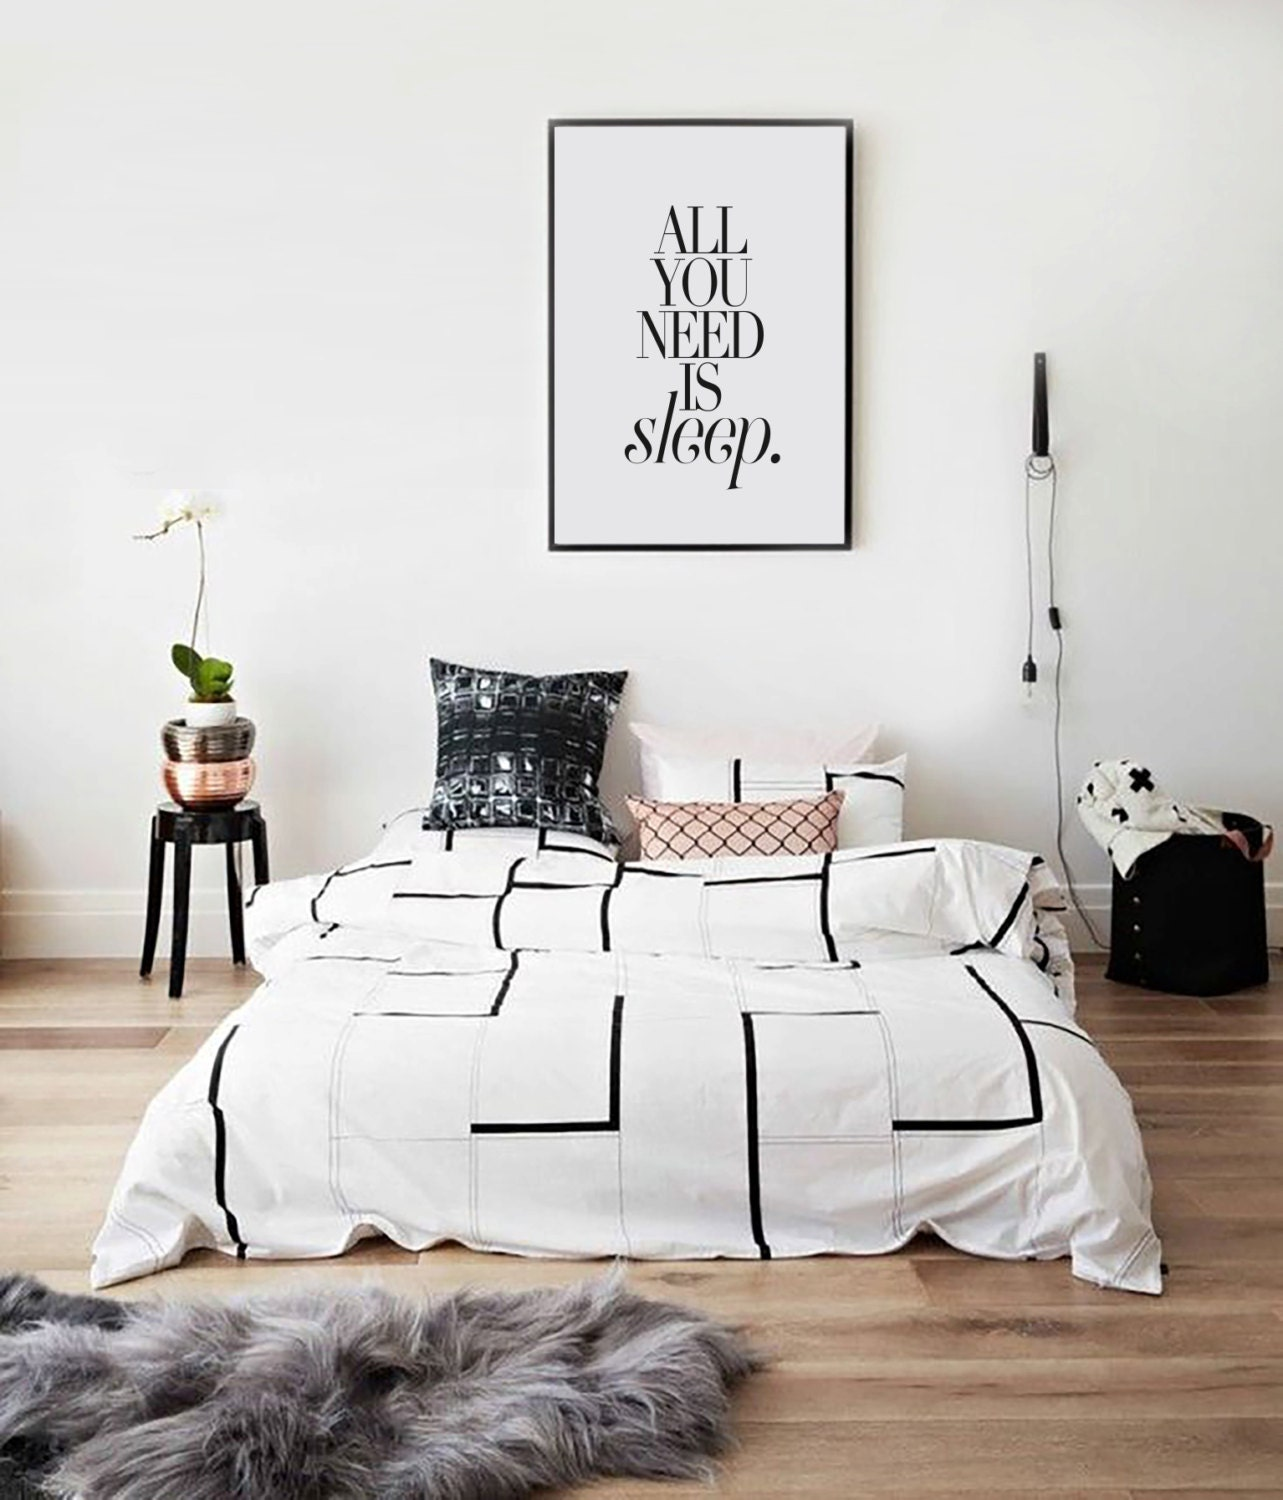 All You Need Is Sleep Bedroom Print Black And White Scandi Art Art Collectibles Digital Download